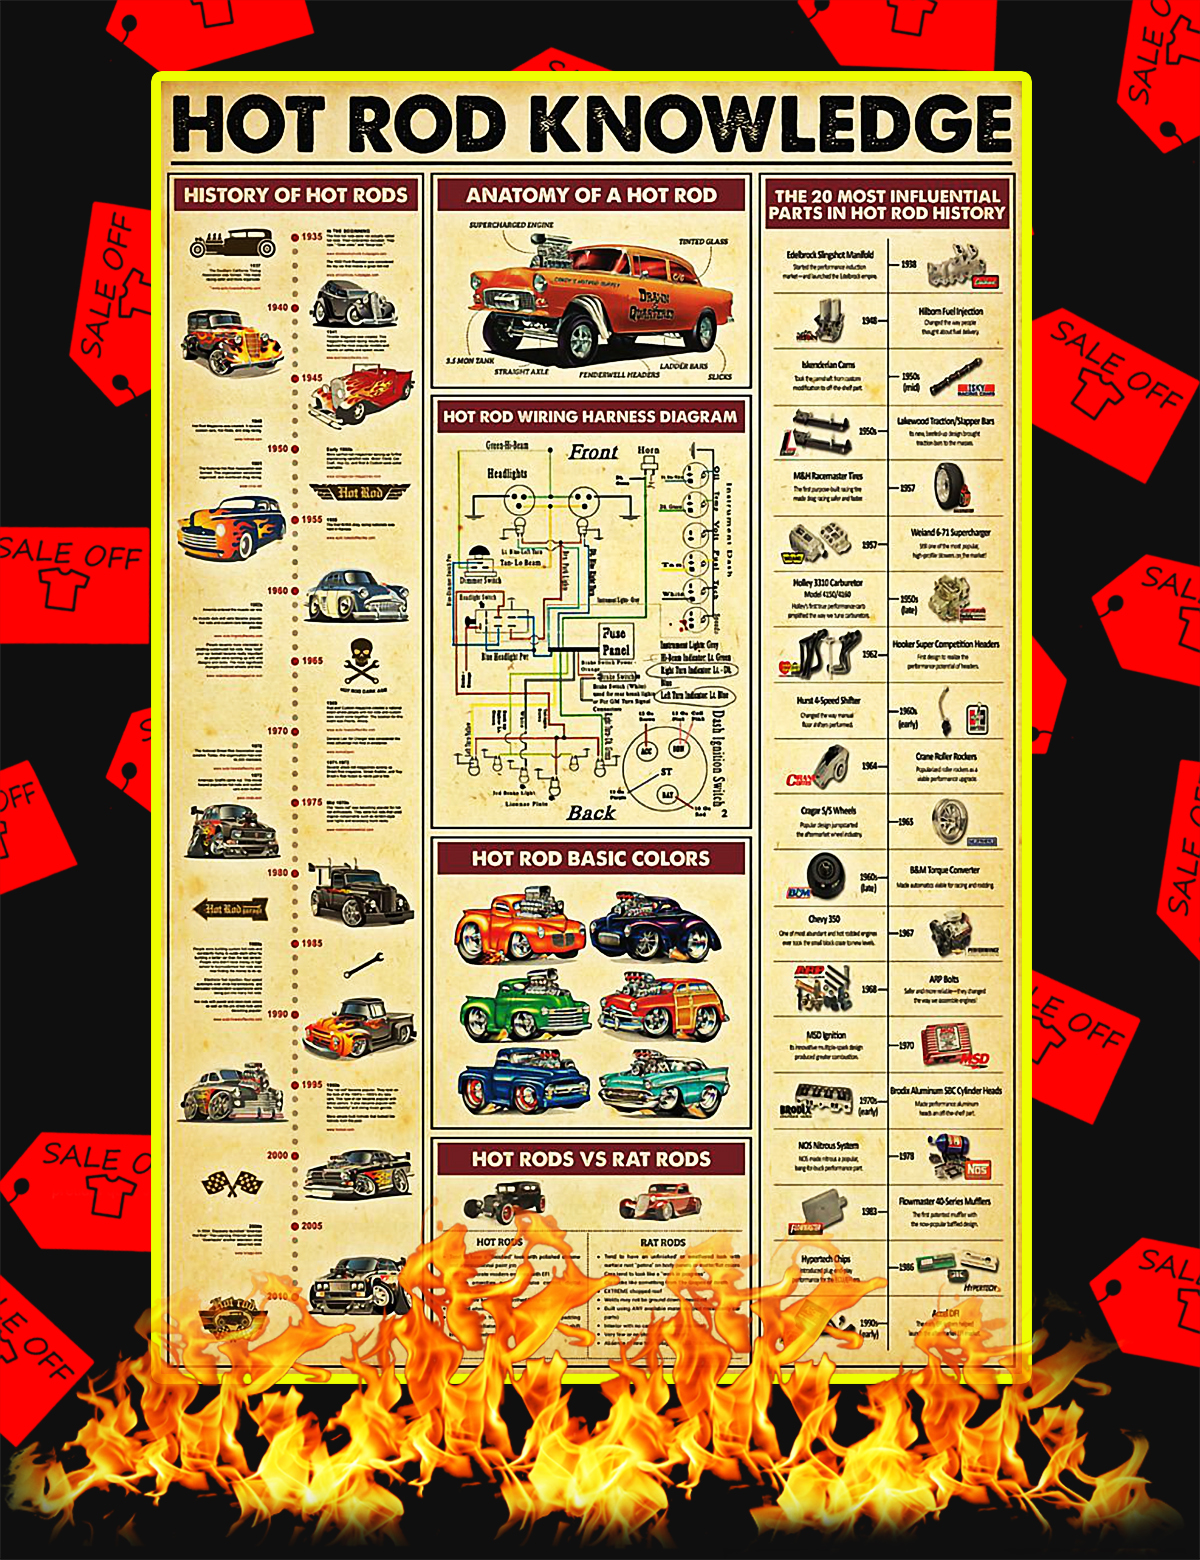 Hot Rod Knowledge Poster - 11x17